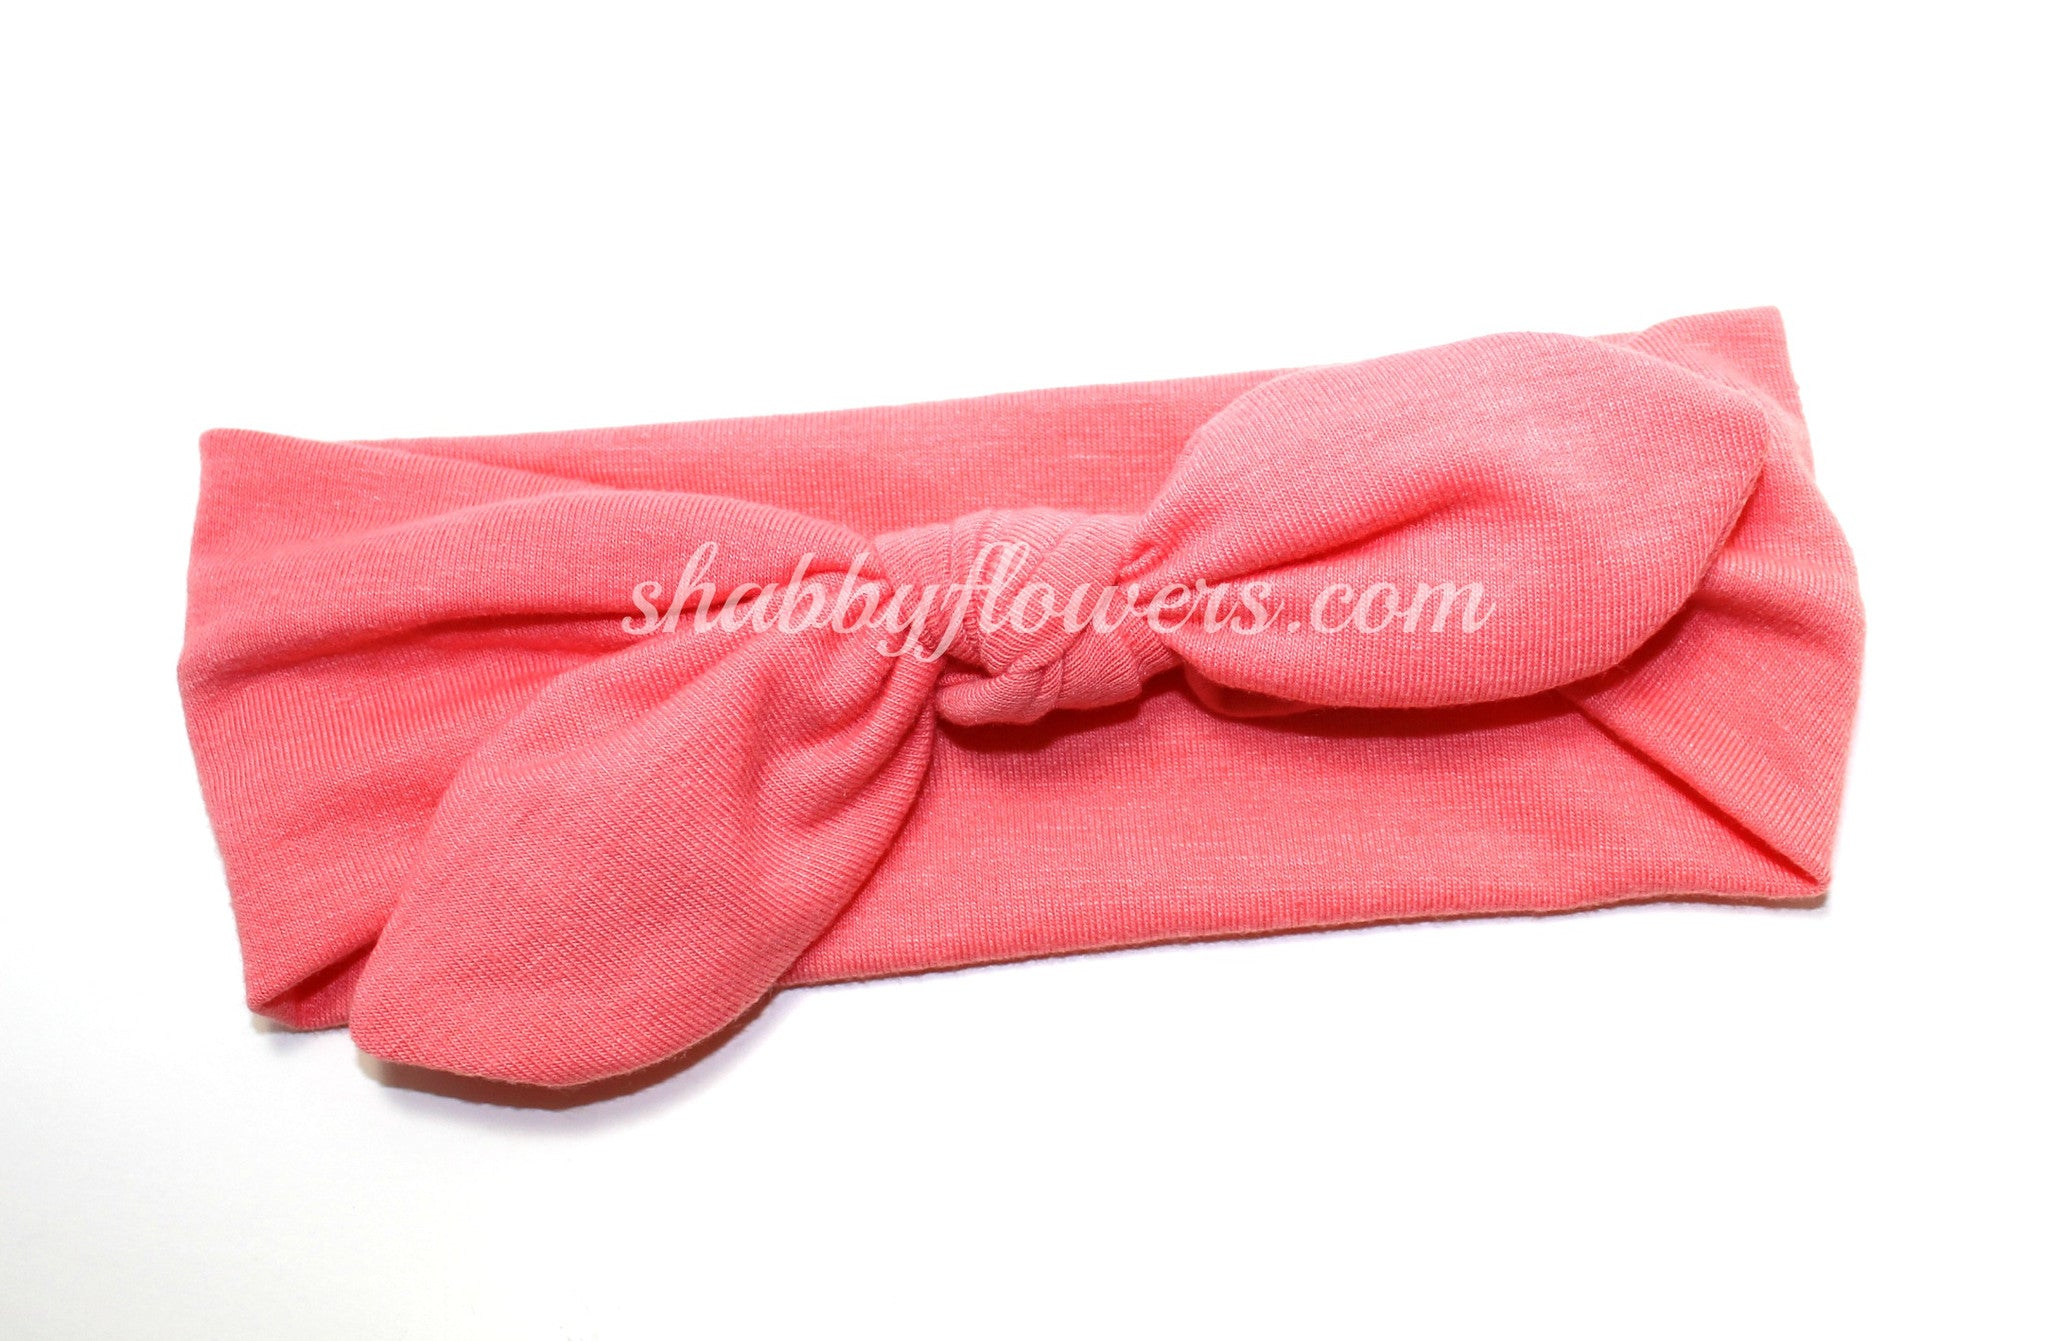 Knot Headband in Light Coral- Small - shabbyflowers.com